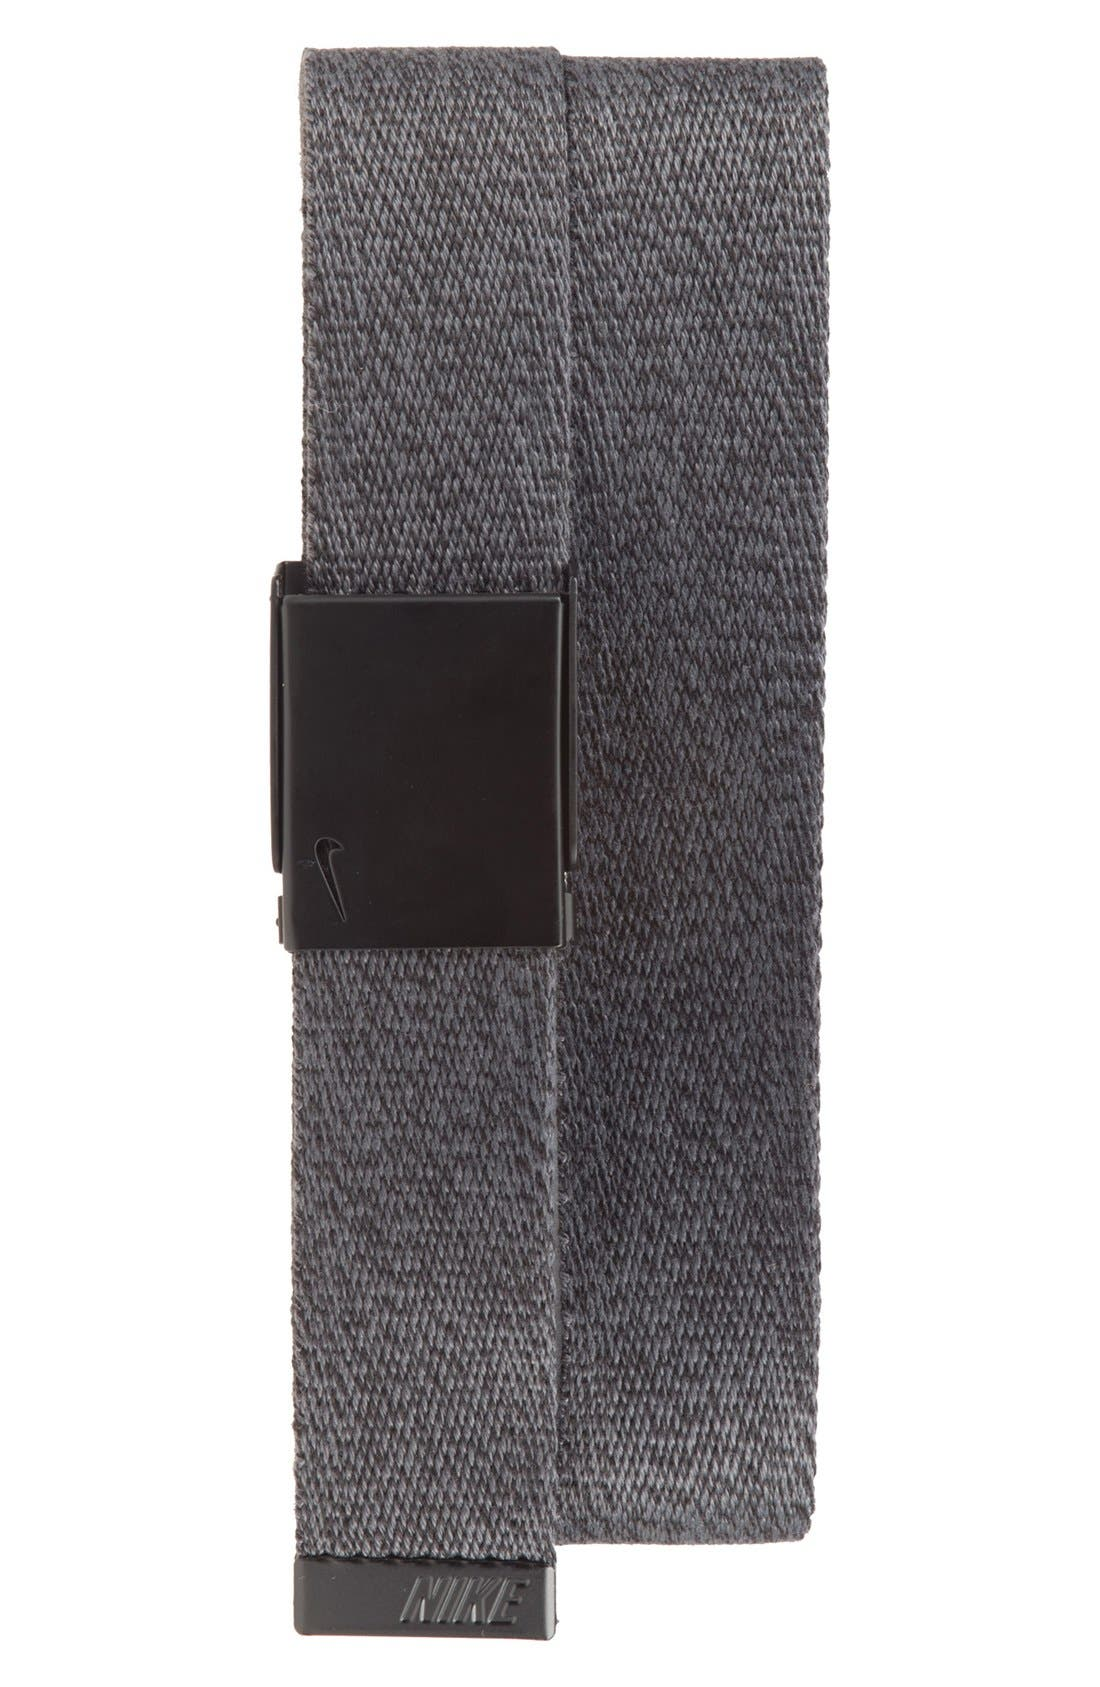 Nike Heathered Web Belt